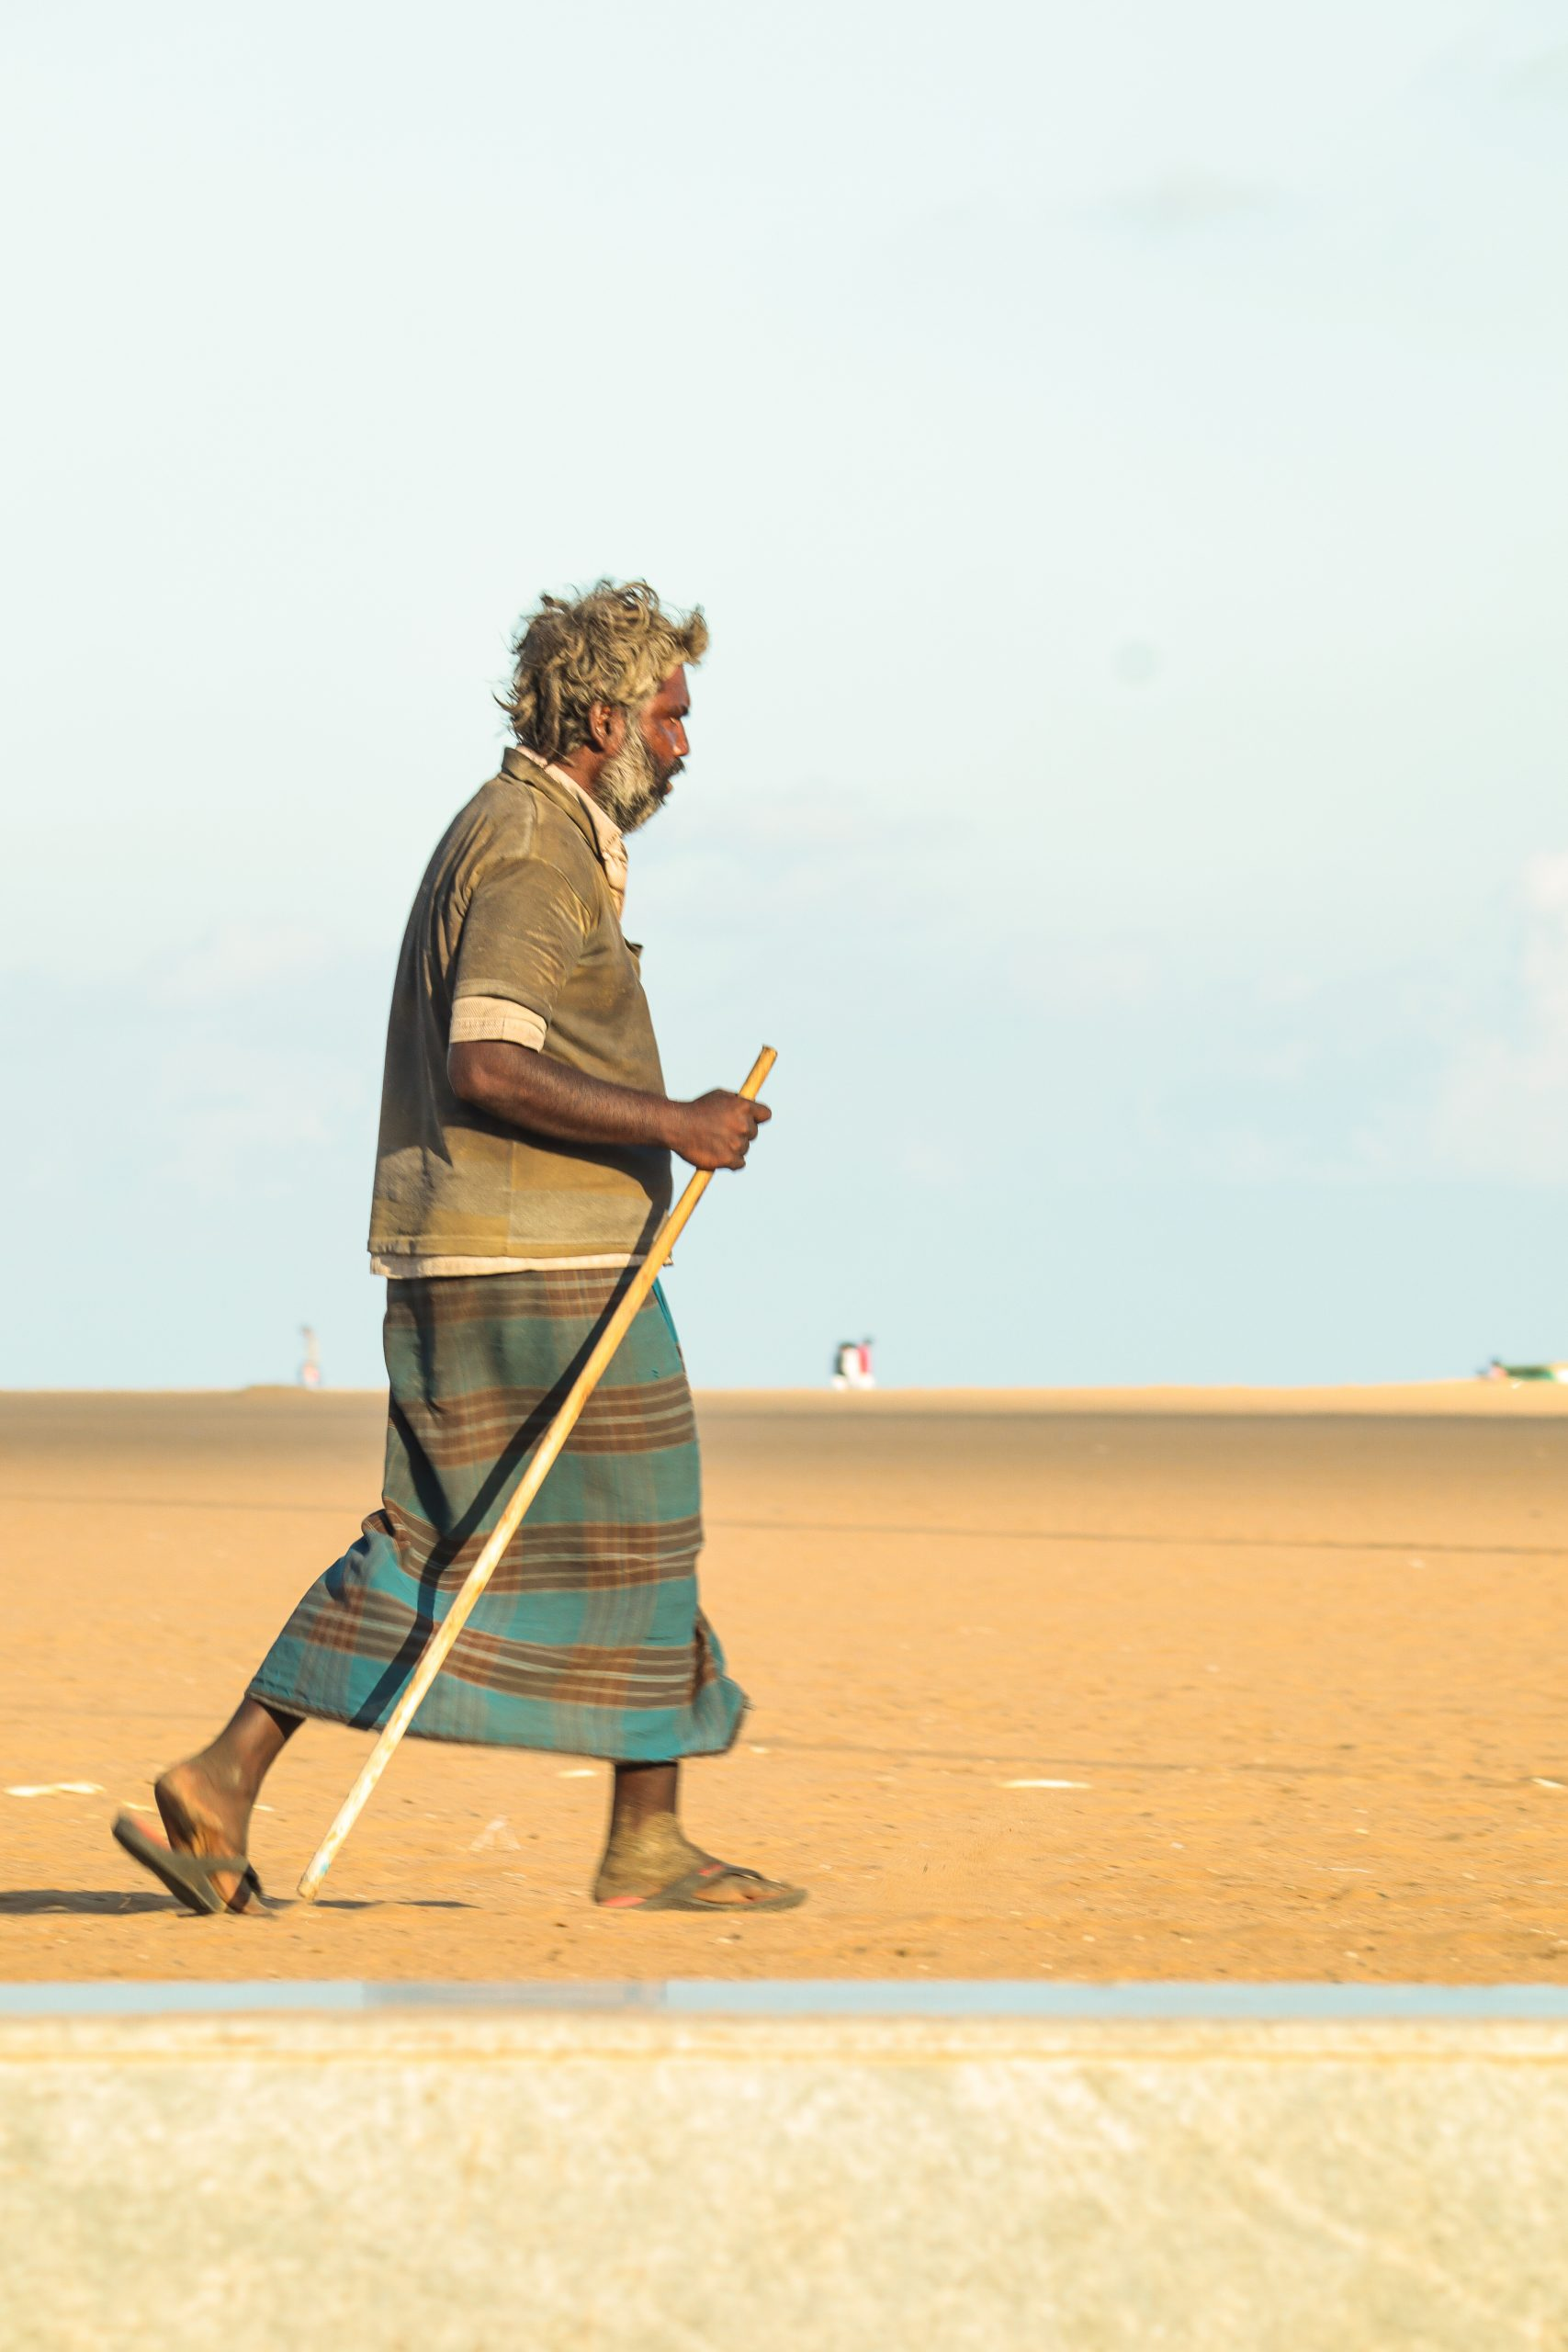 An old man walking in sand